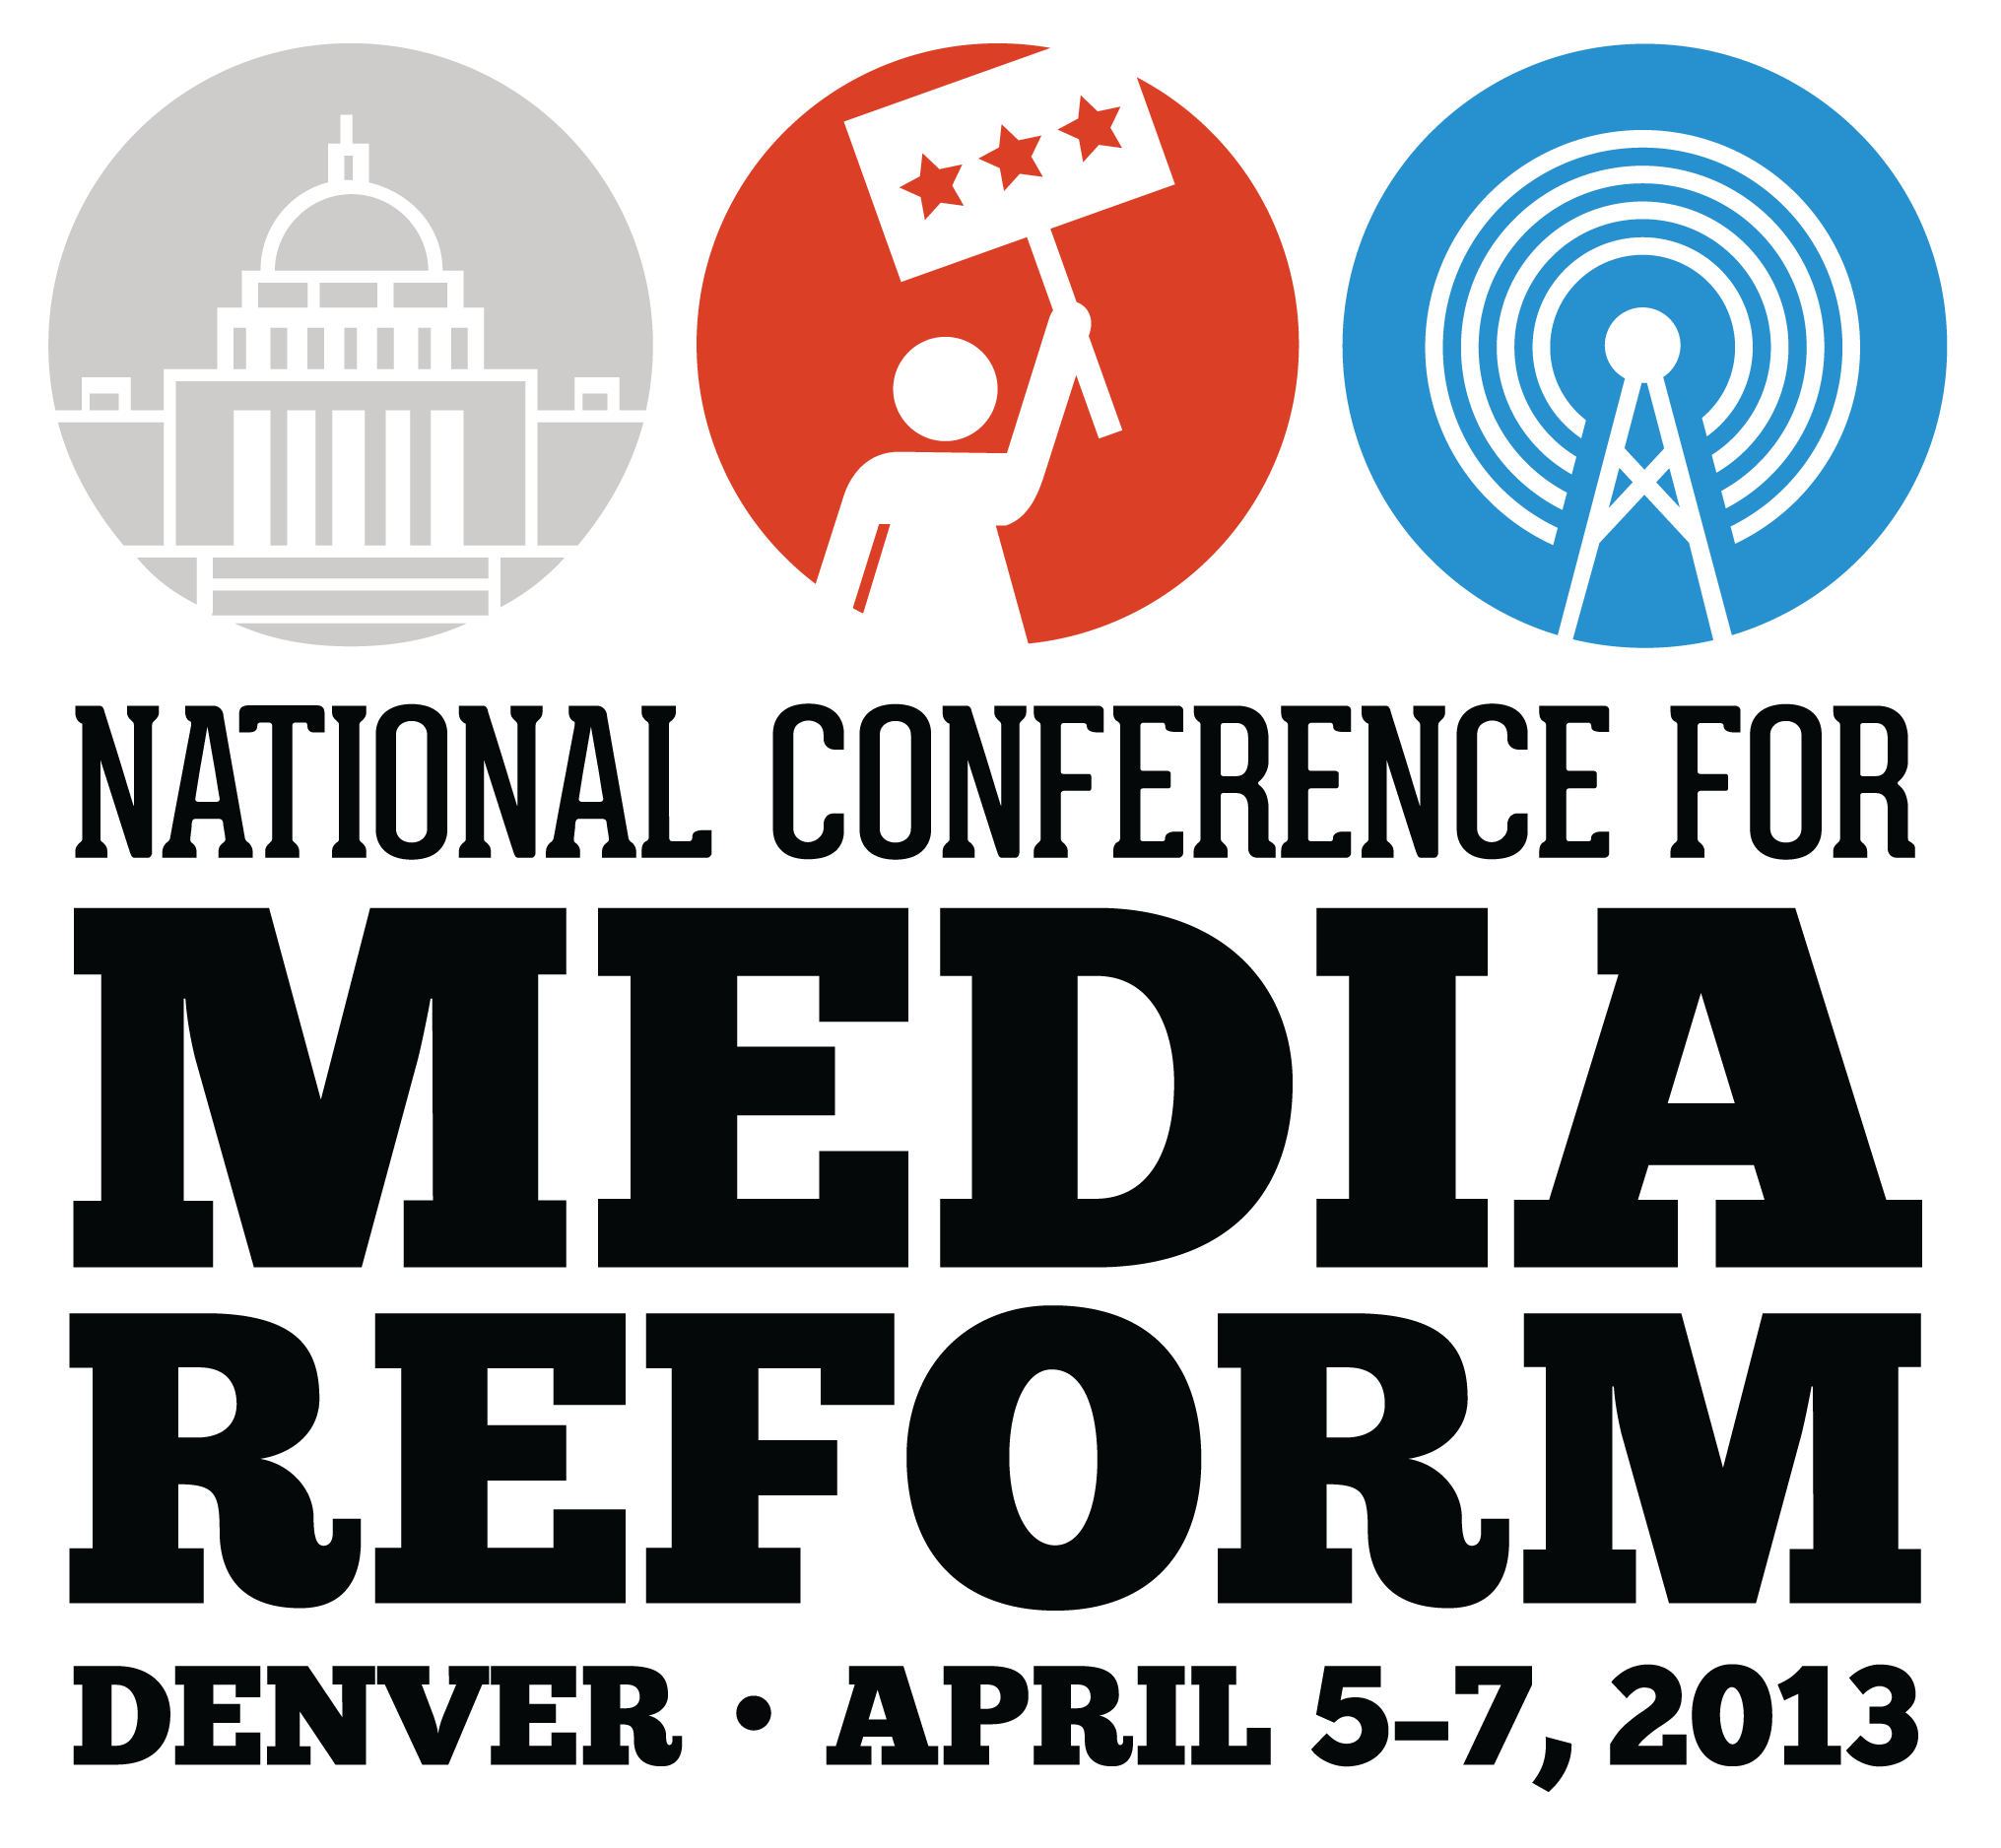 Susan Crawford's Remarks at the National Conference for Media Reform